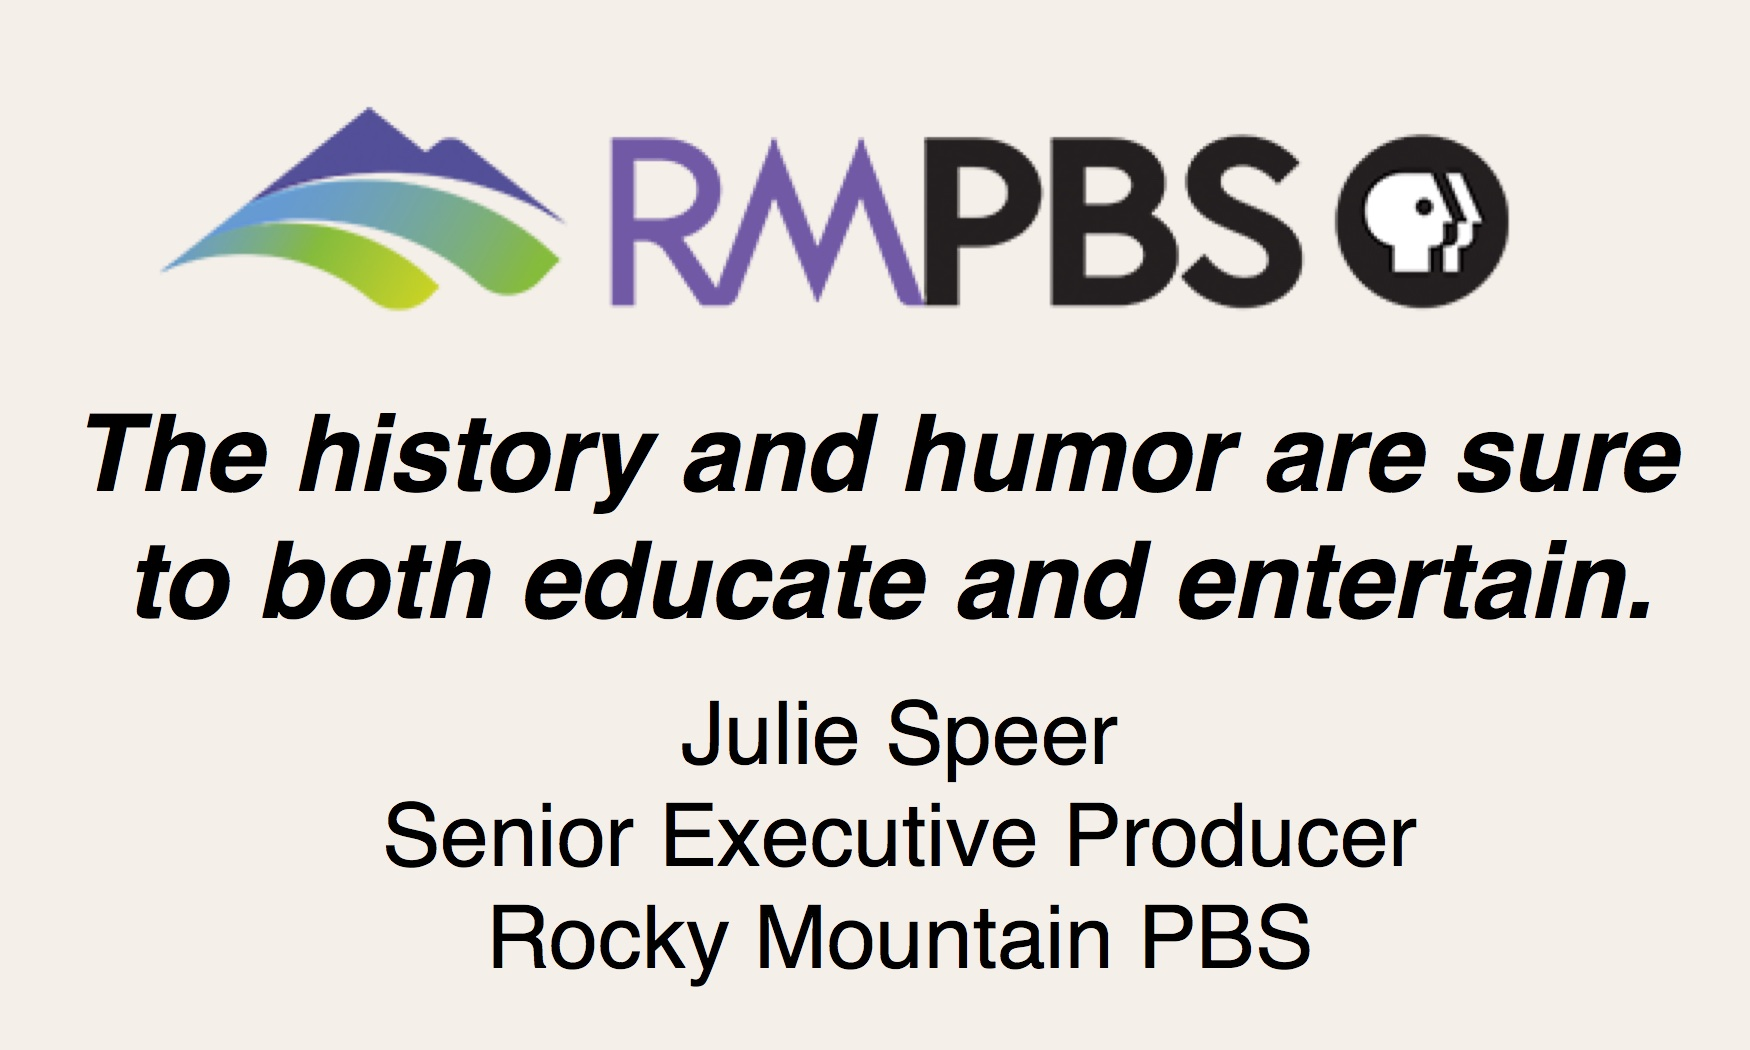 bernie harberts lost sea expedition rocky mountain pbs julie speer